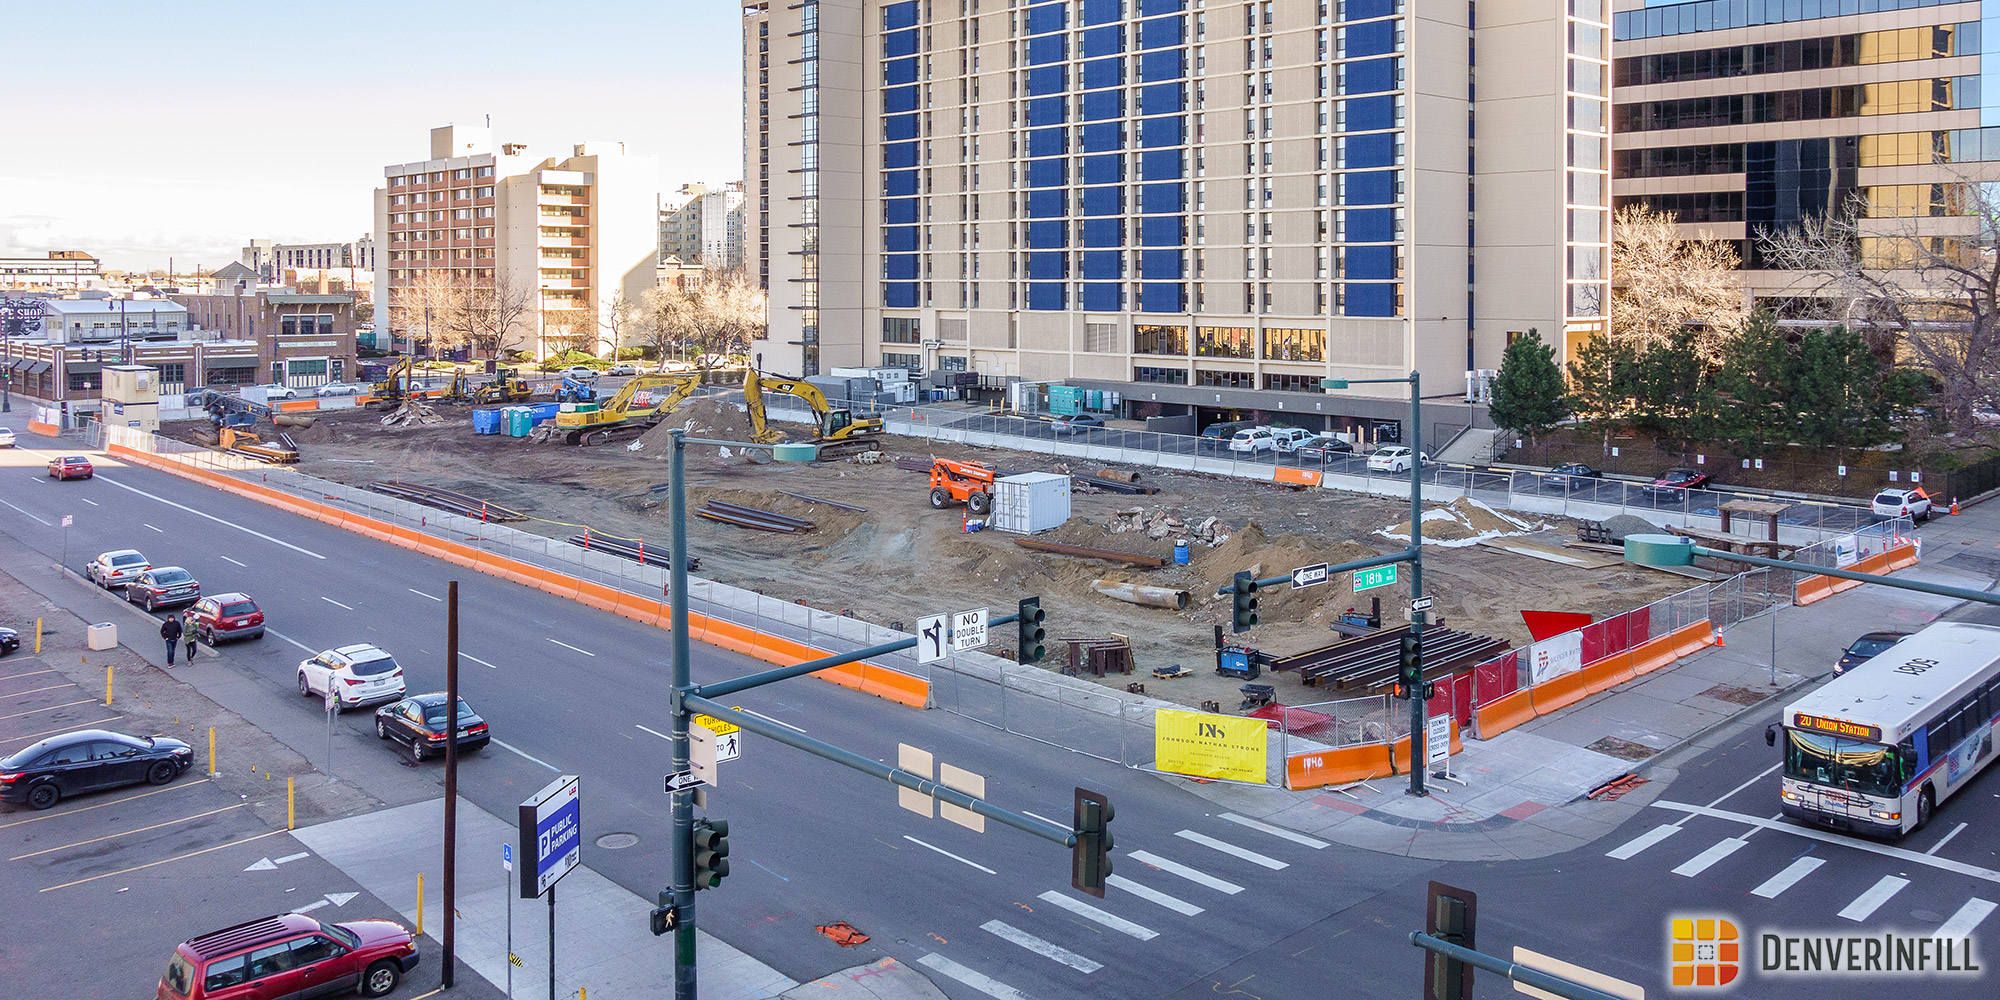 The 18th and Market Apartments recently broke ground and will fill a major gap in LoDo's urban fabric.